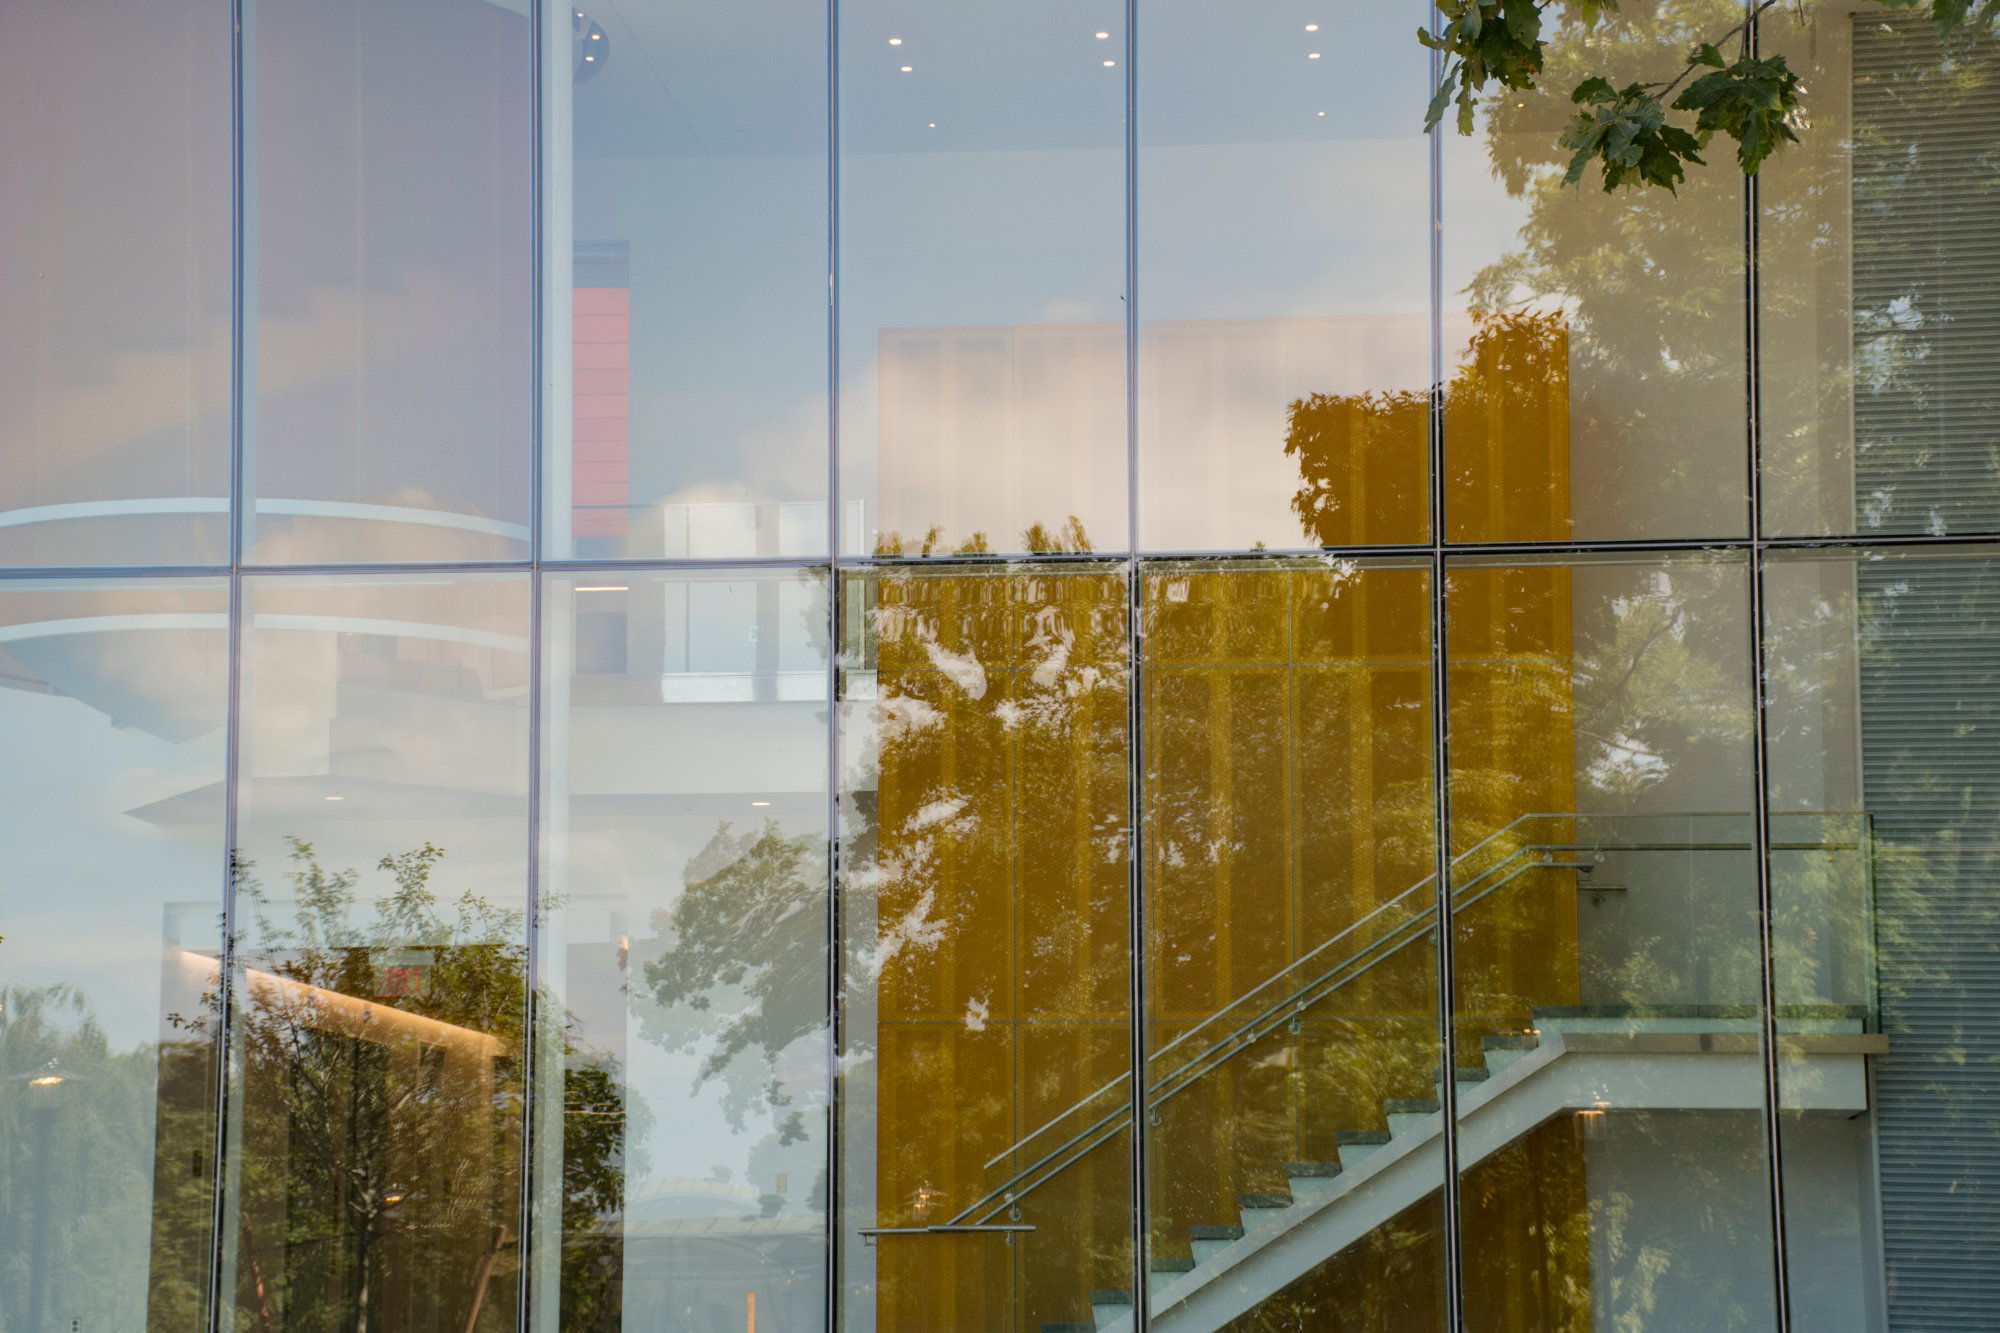 A view of the ground floor corridor with the surrounding landscape reflected in the glass.